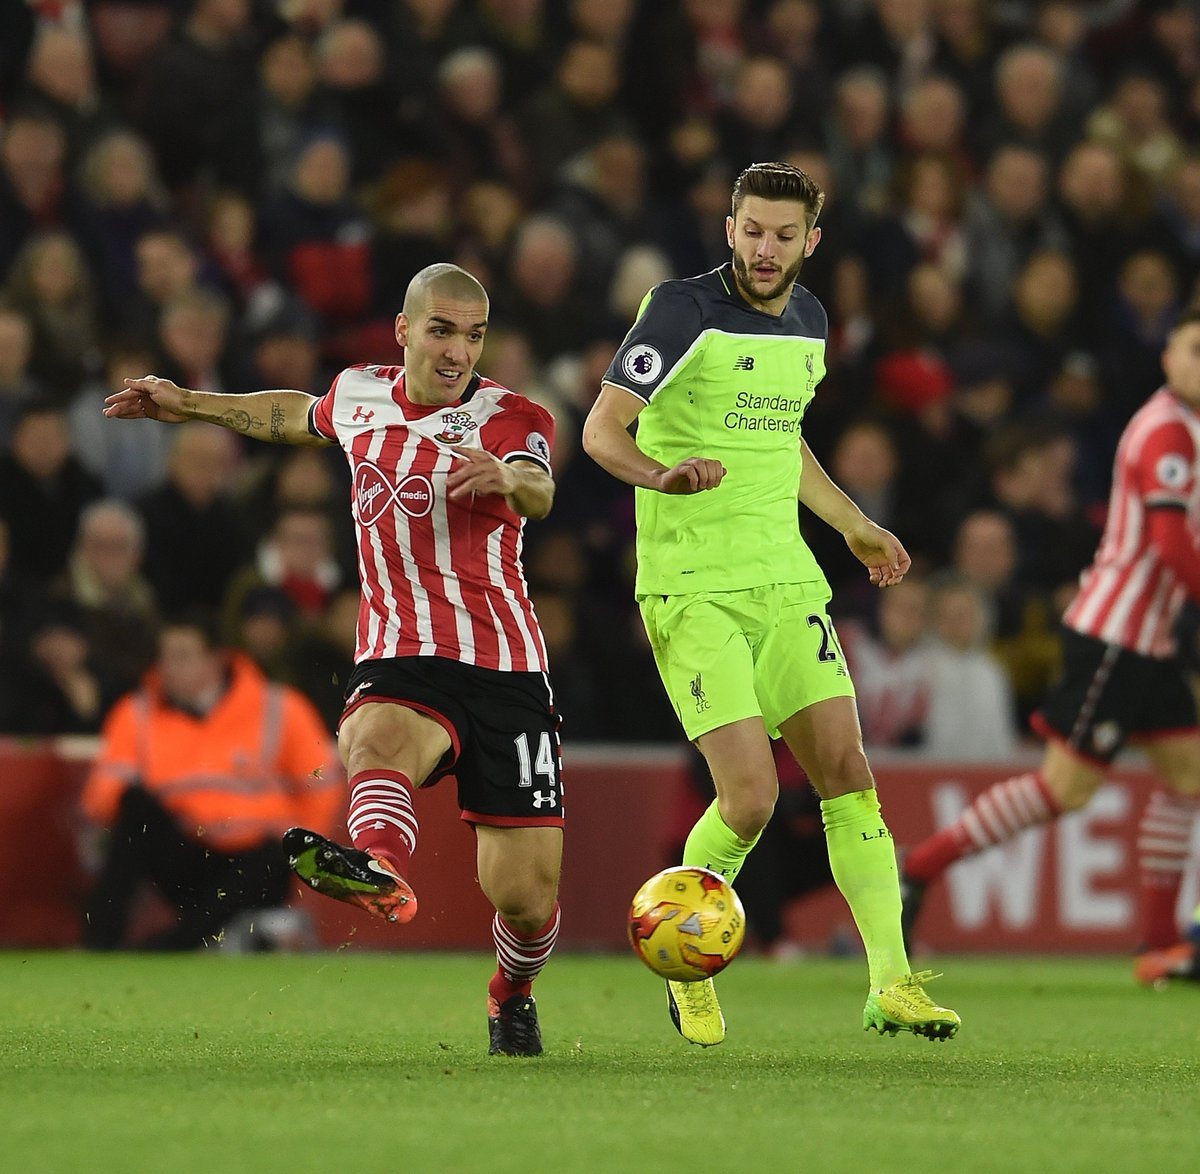 59: Lallana finally finds a bit of space but his shot goes wide.  Bett...